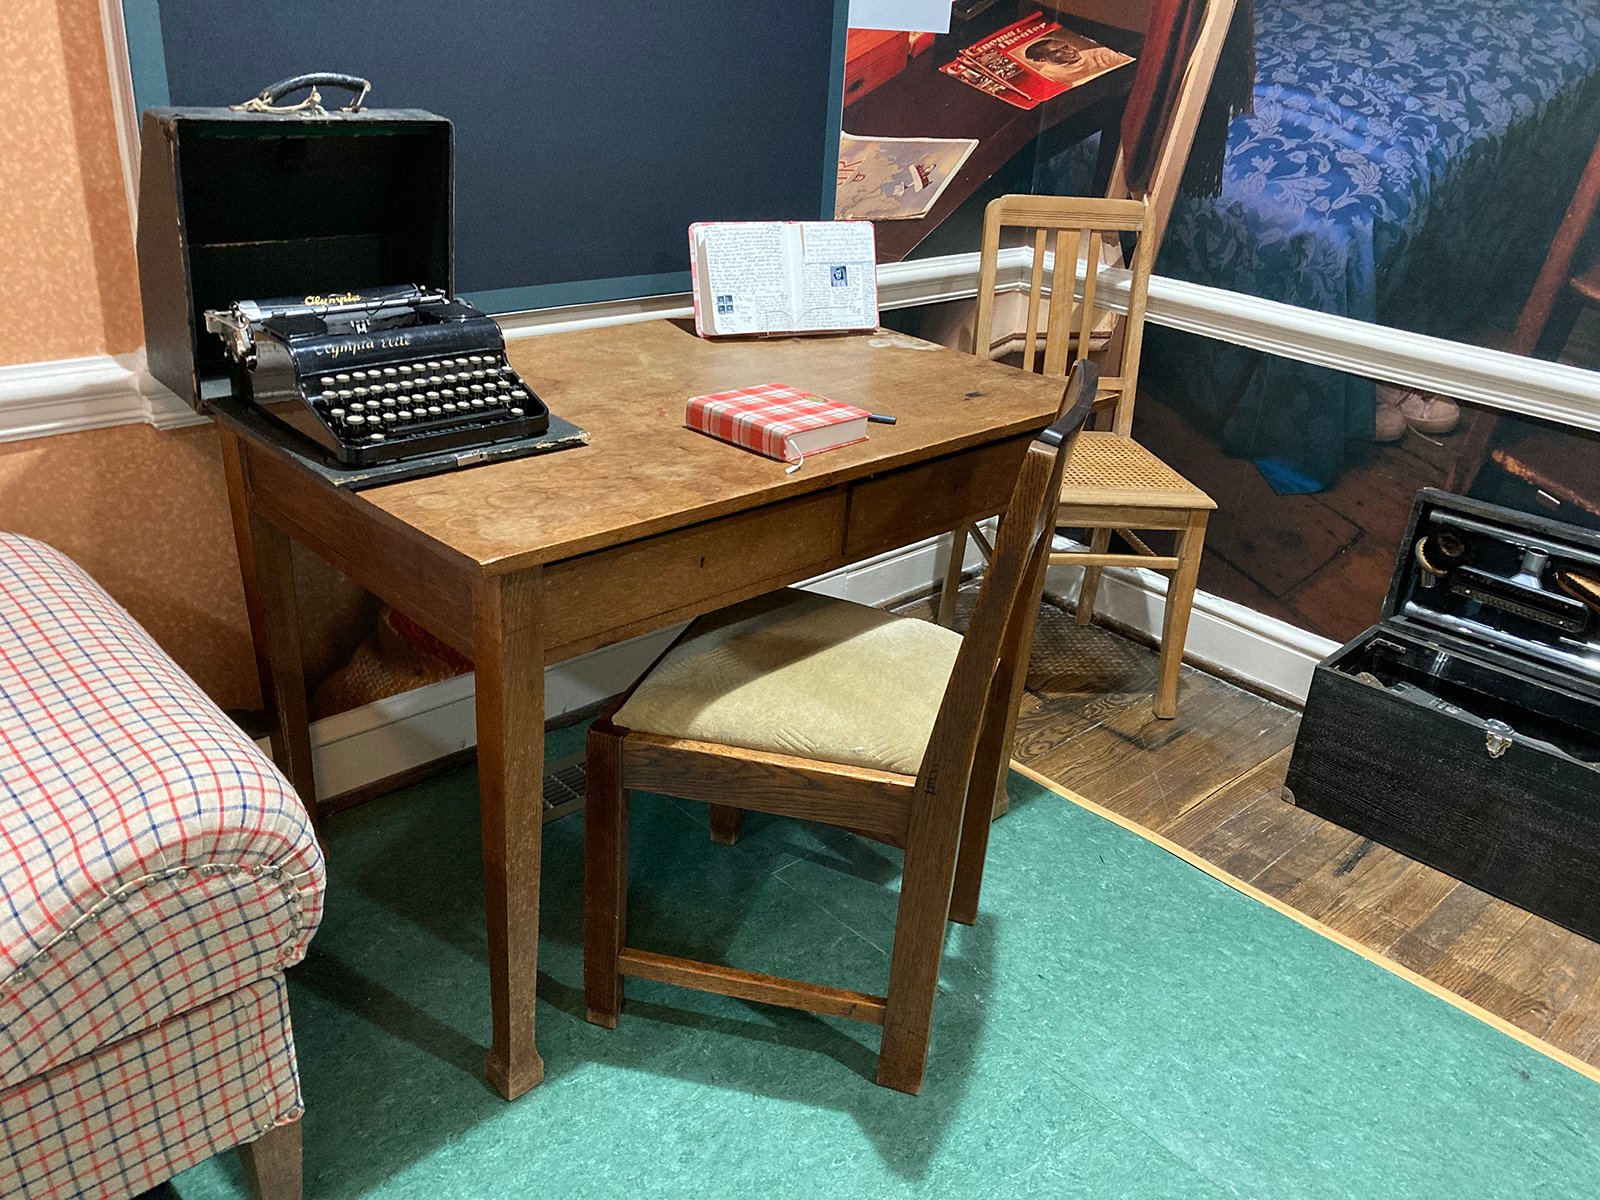 The Anne Frank Center, in Columbia, South Carolina, includes a desk similar to the one that Anne Frank wrote at. She was given a pink checkered diary on her 13th birthday just before the family went into hiding in 1942. RNS photo by Yonat Shimron